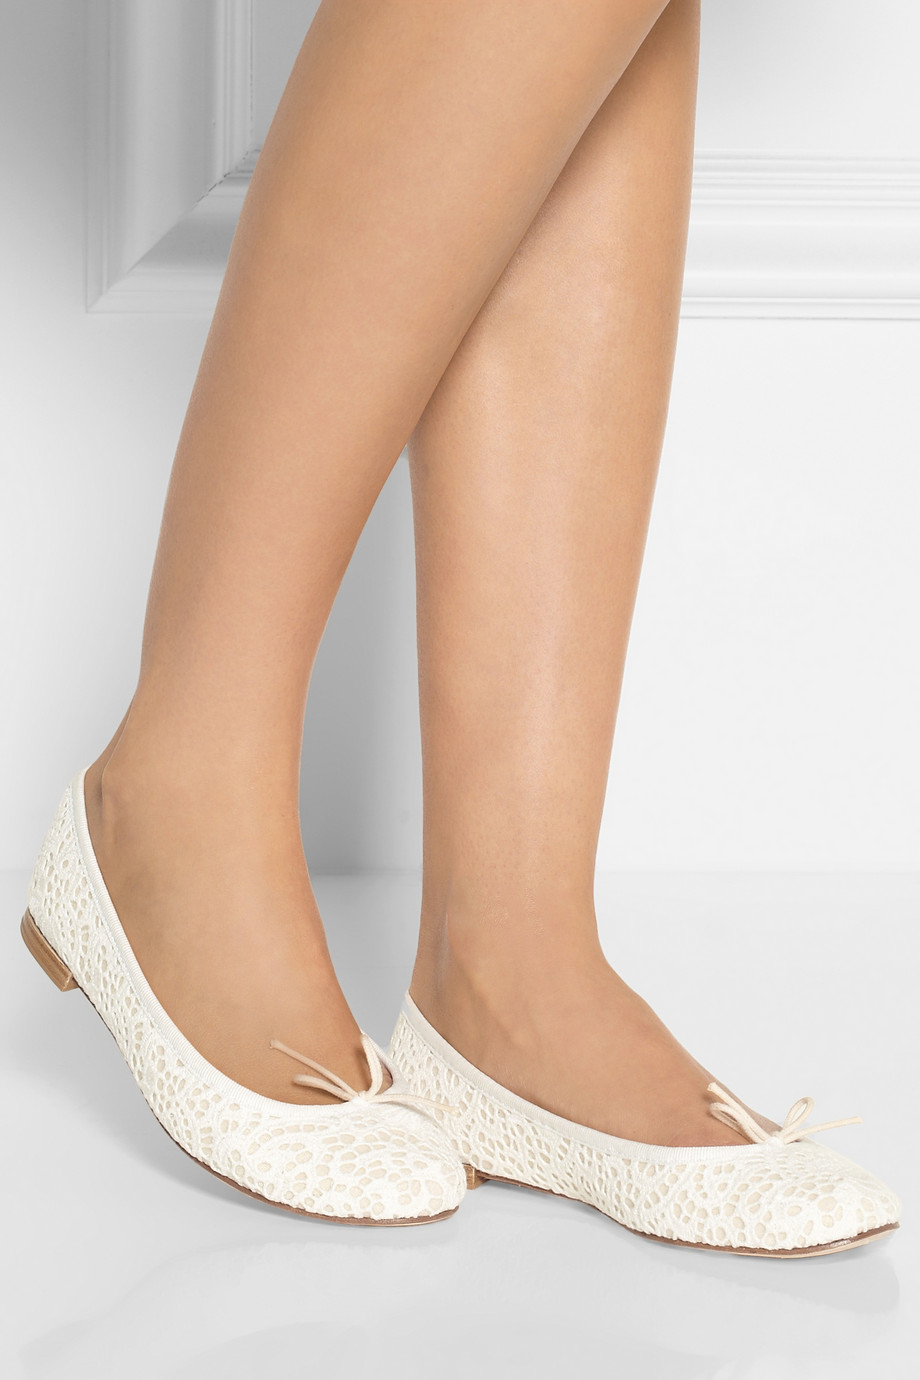 Lyst Repetto The Cendrillon Crocheted Lace Ballet Flats